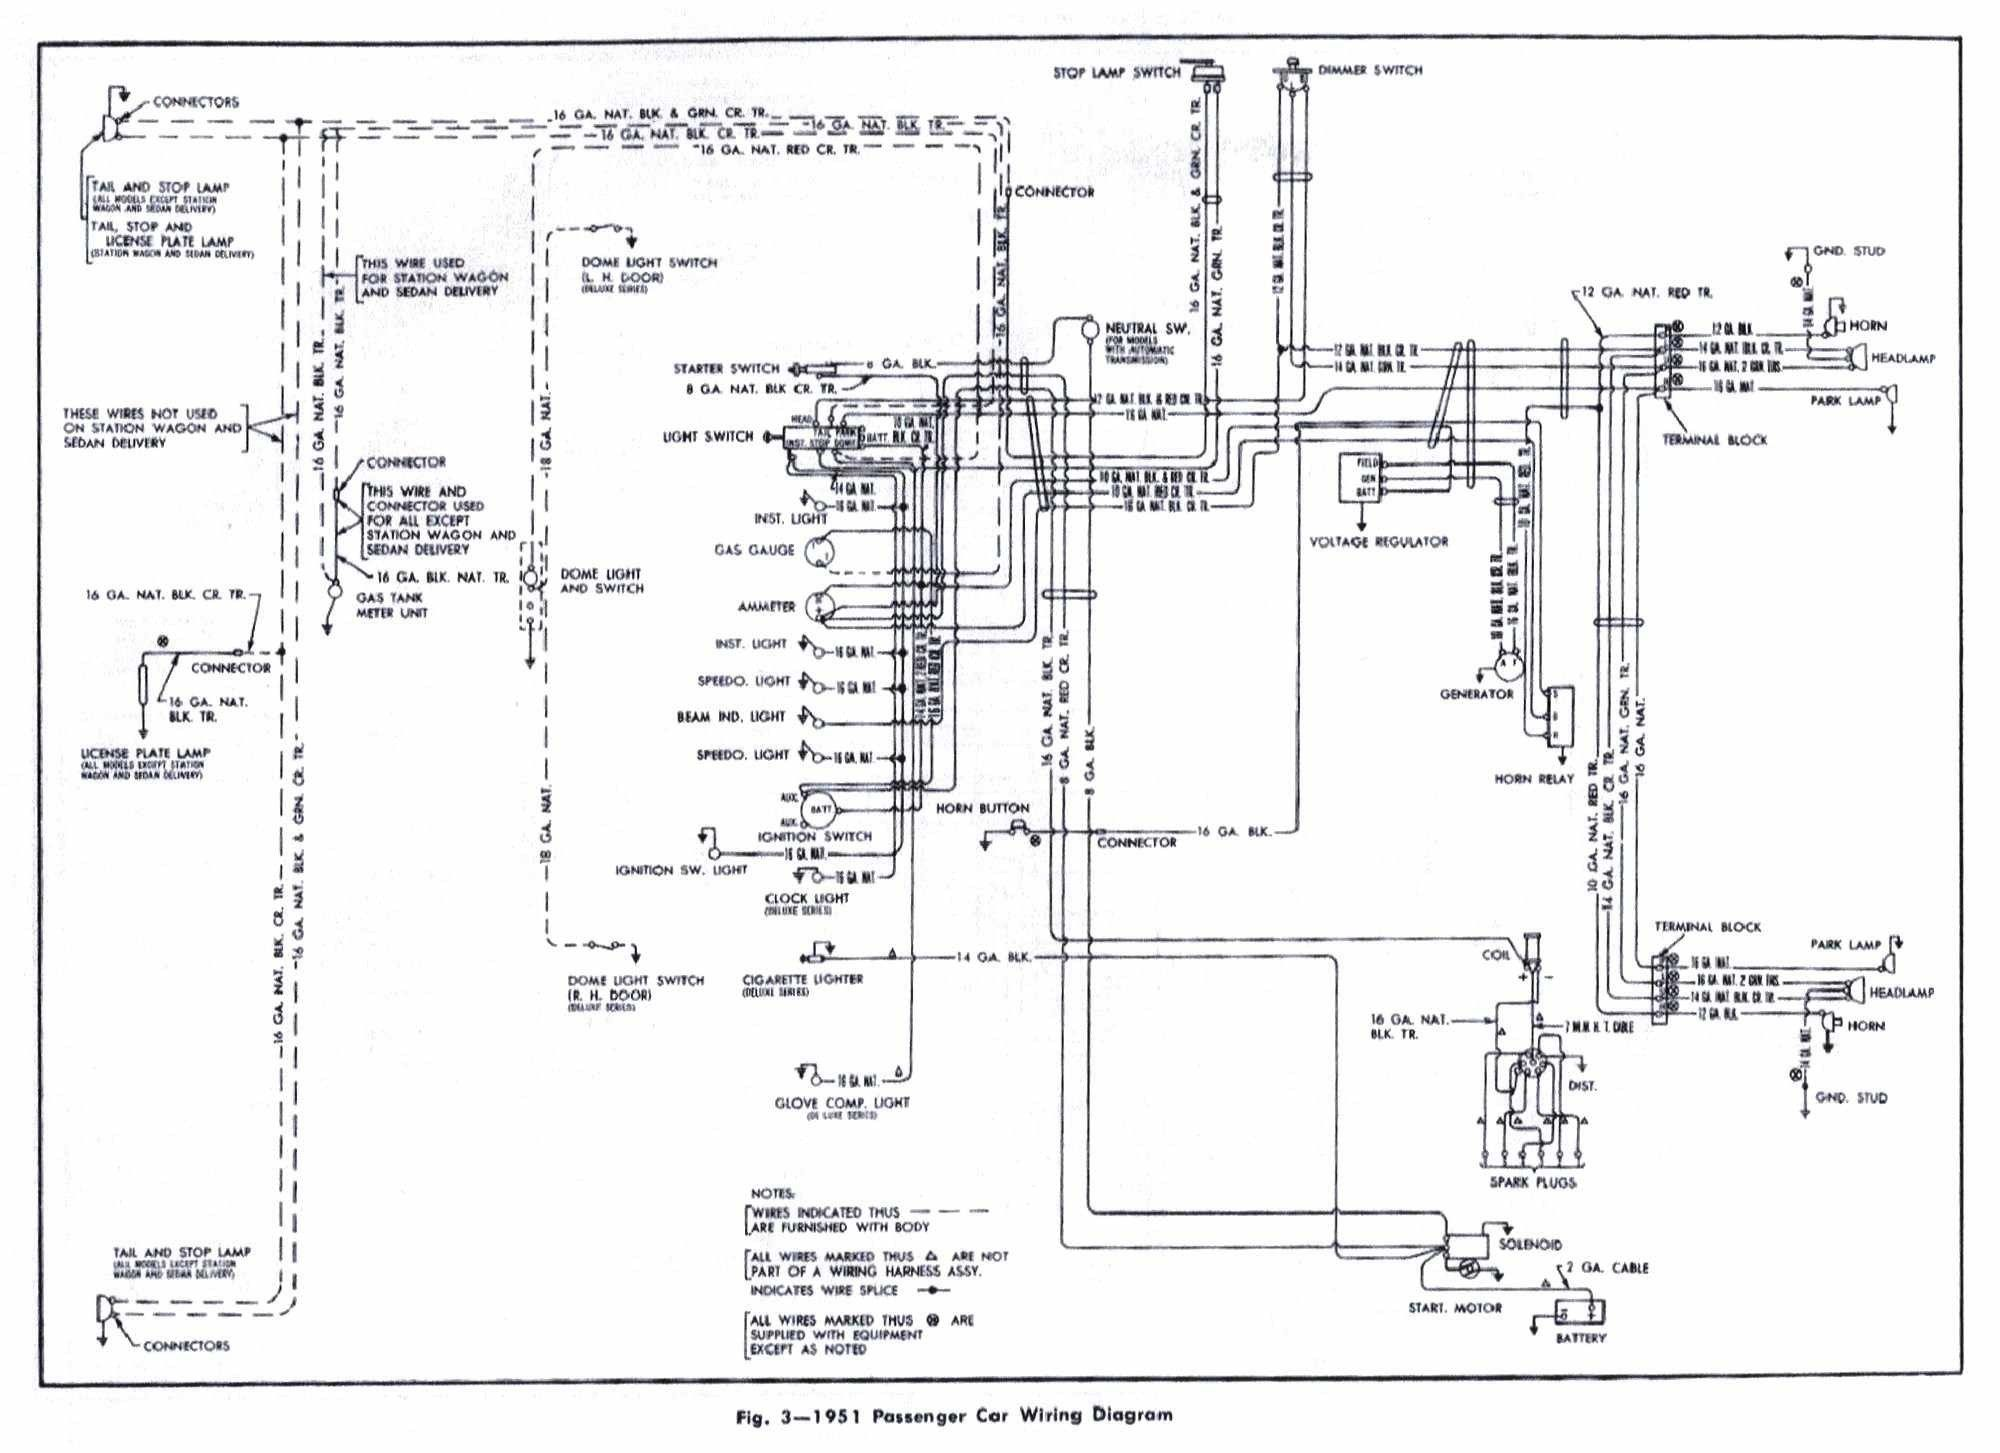 Unique Electrical Wiring Diagram Car Toyota Diagram